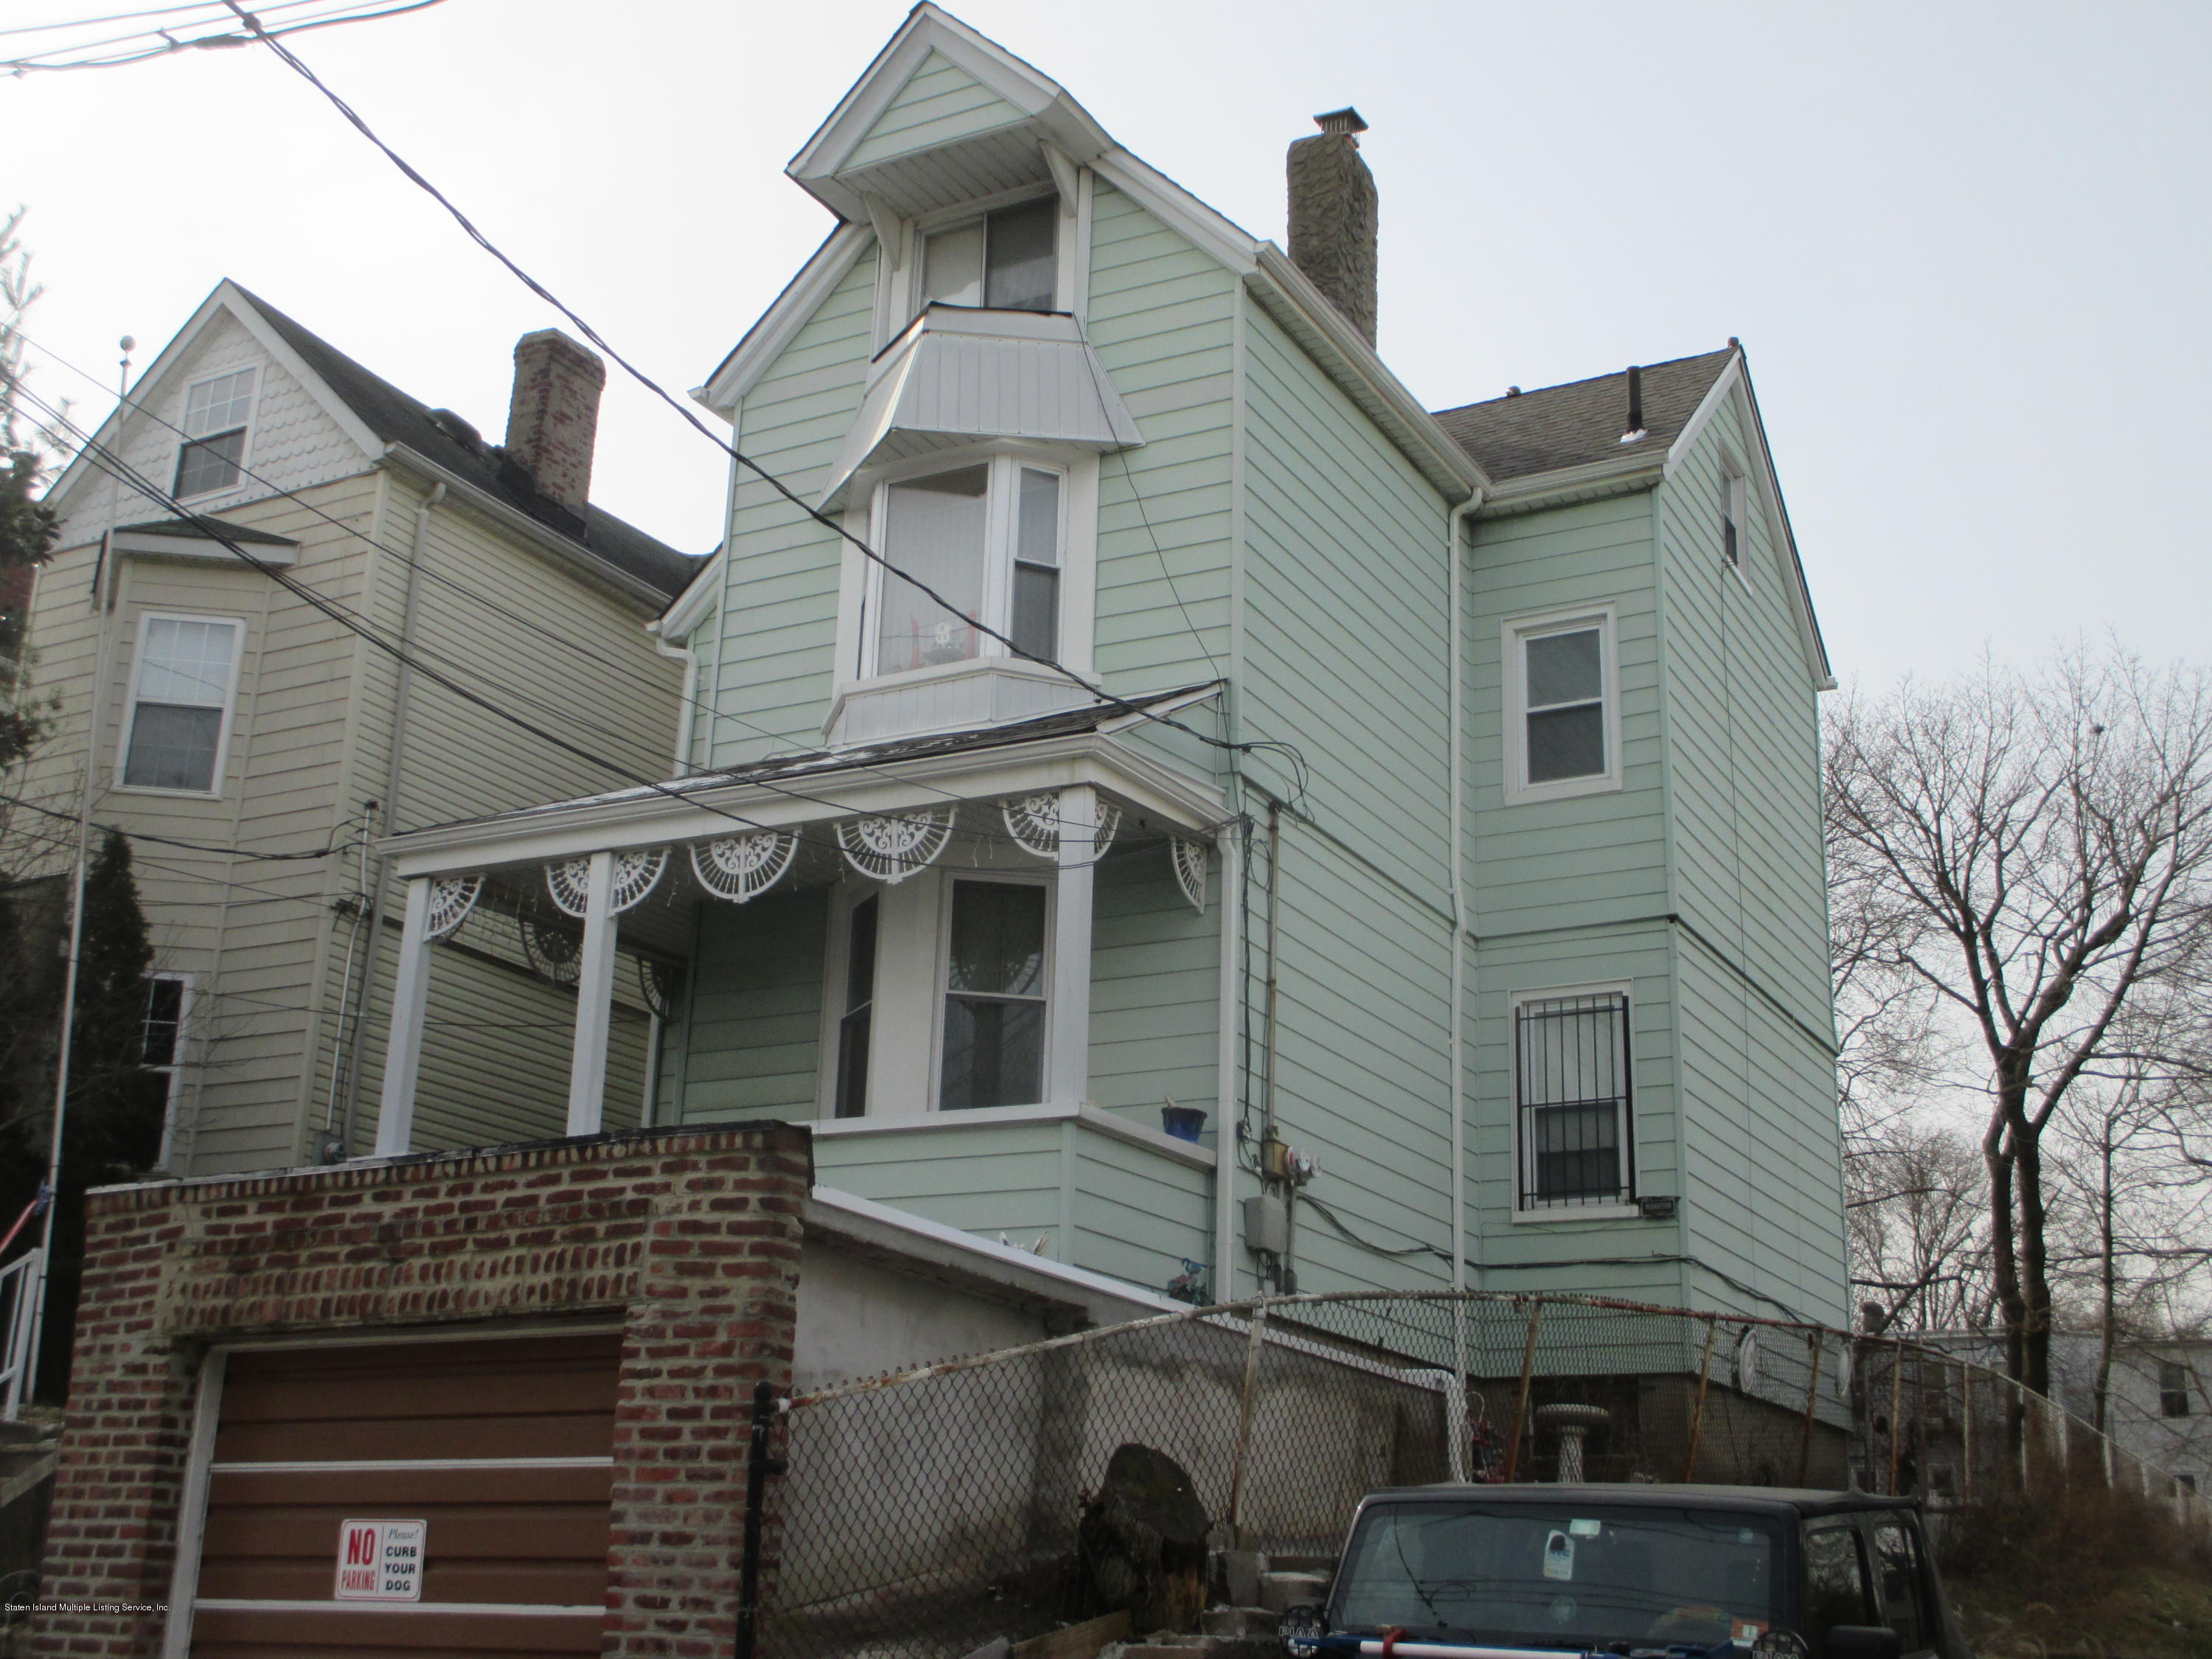 Two Family - Detached 24 Clinton Avenue  Staten Island, NY 10301, MLS-1125949-3